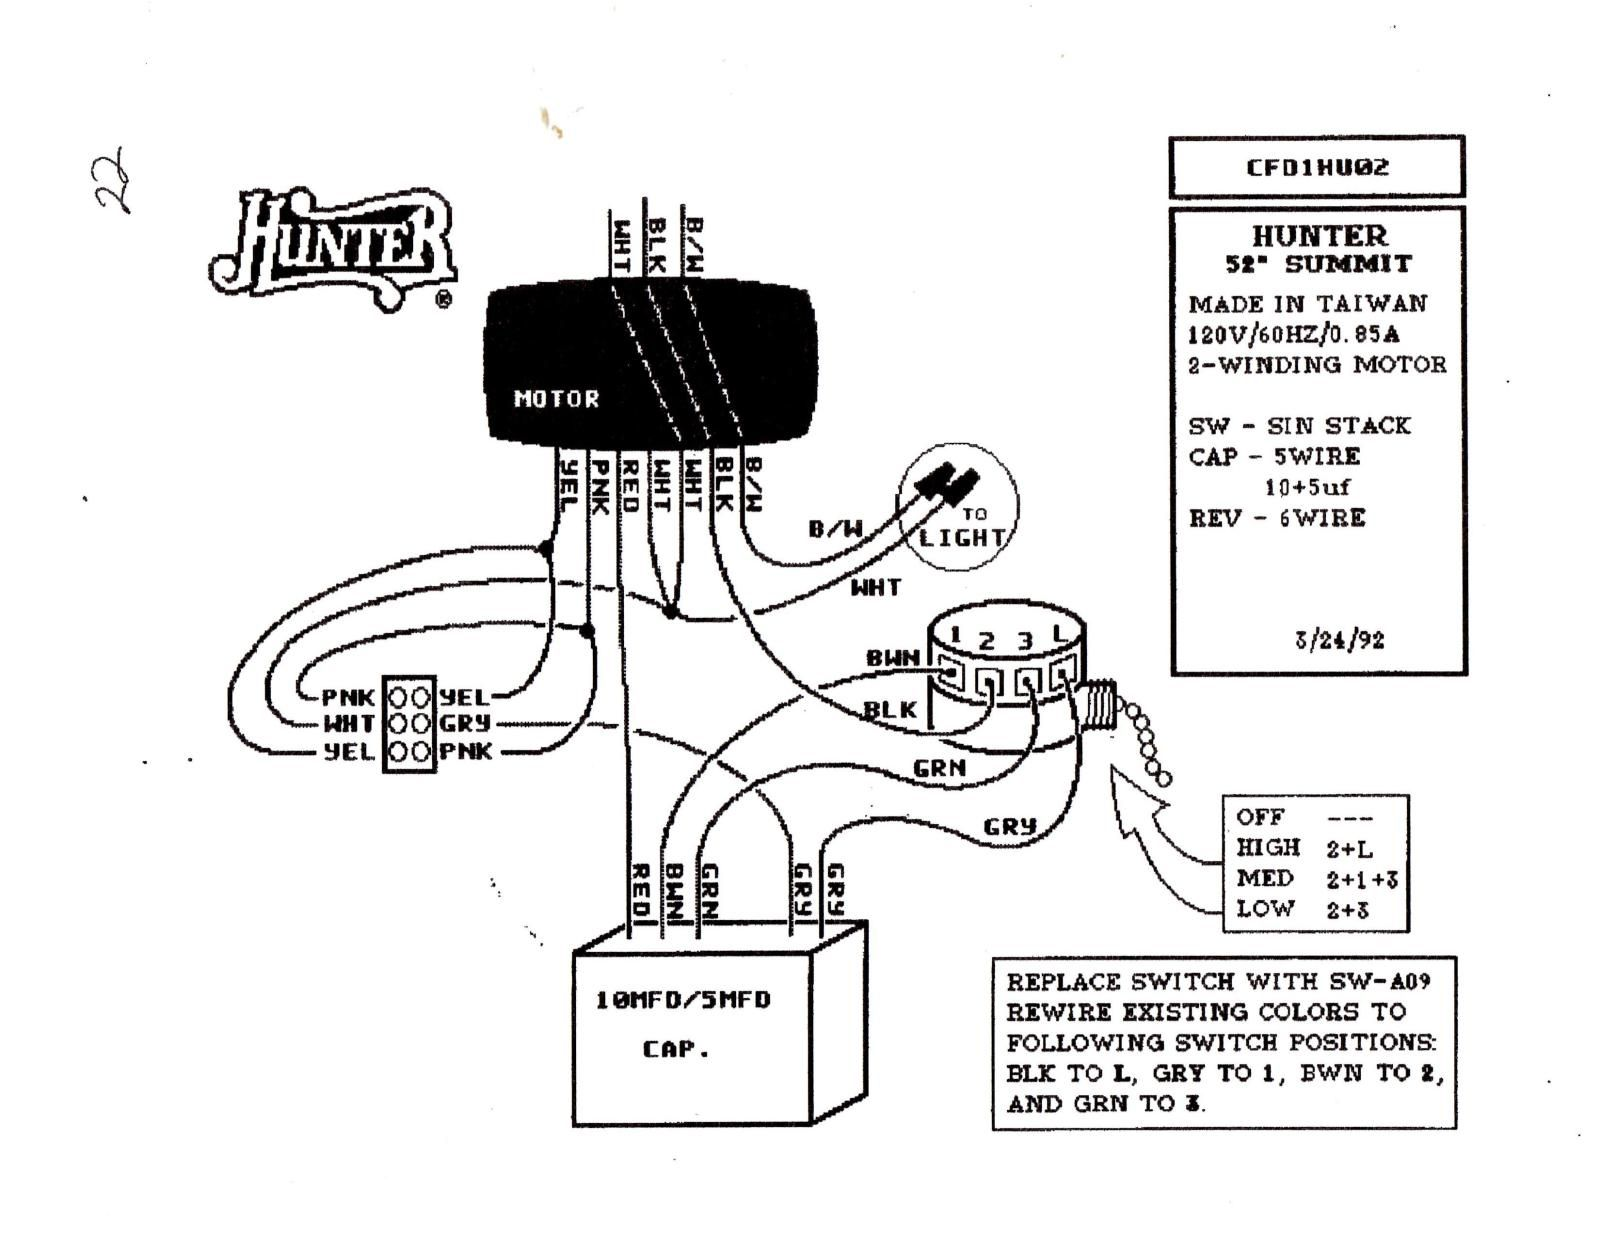 ceiling fan remote control wiring diagram  | pinterest.com